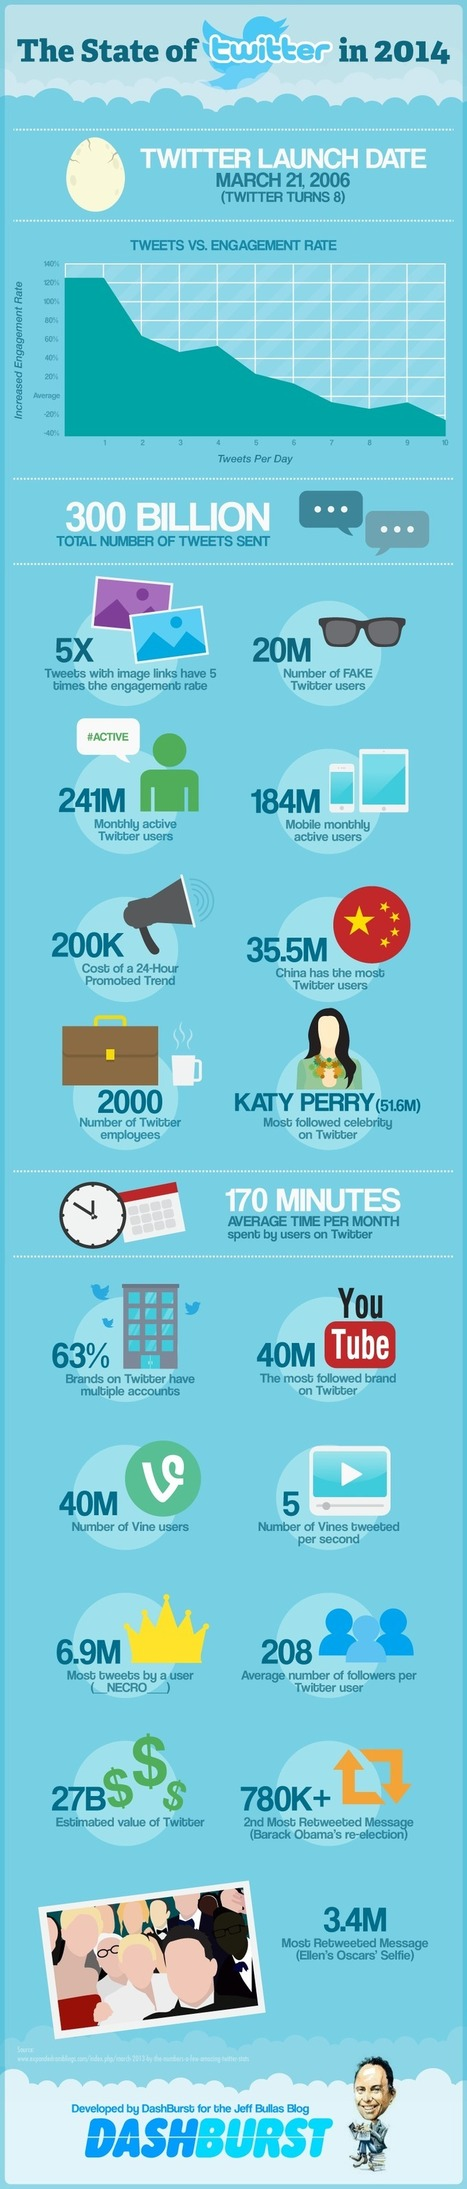 15 Twitter Facts and Figures for 2014 You Need to Know - Jeffbullas's Blog | Public Relations & Social Media Insight | Scoop.it